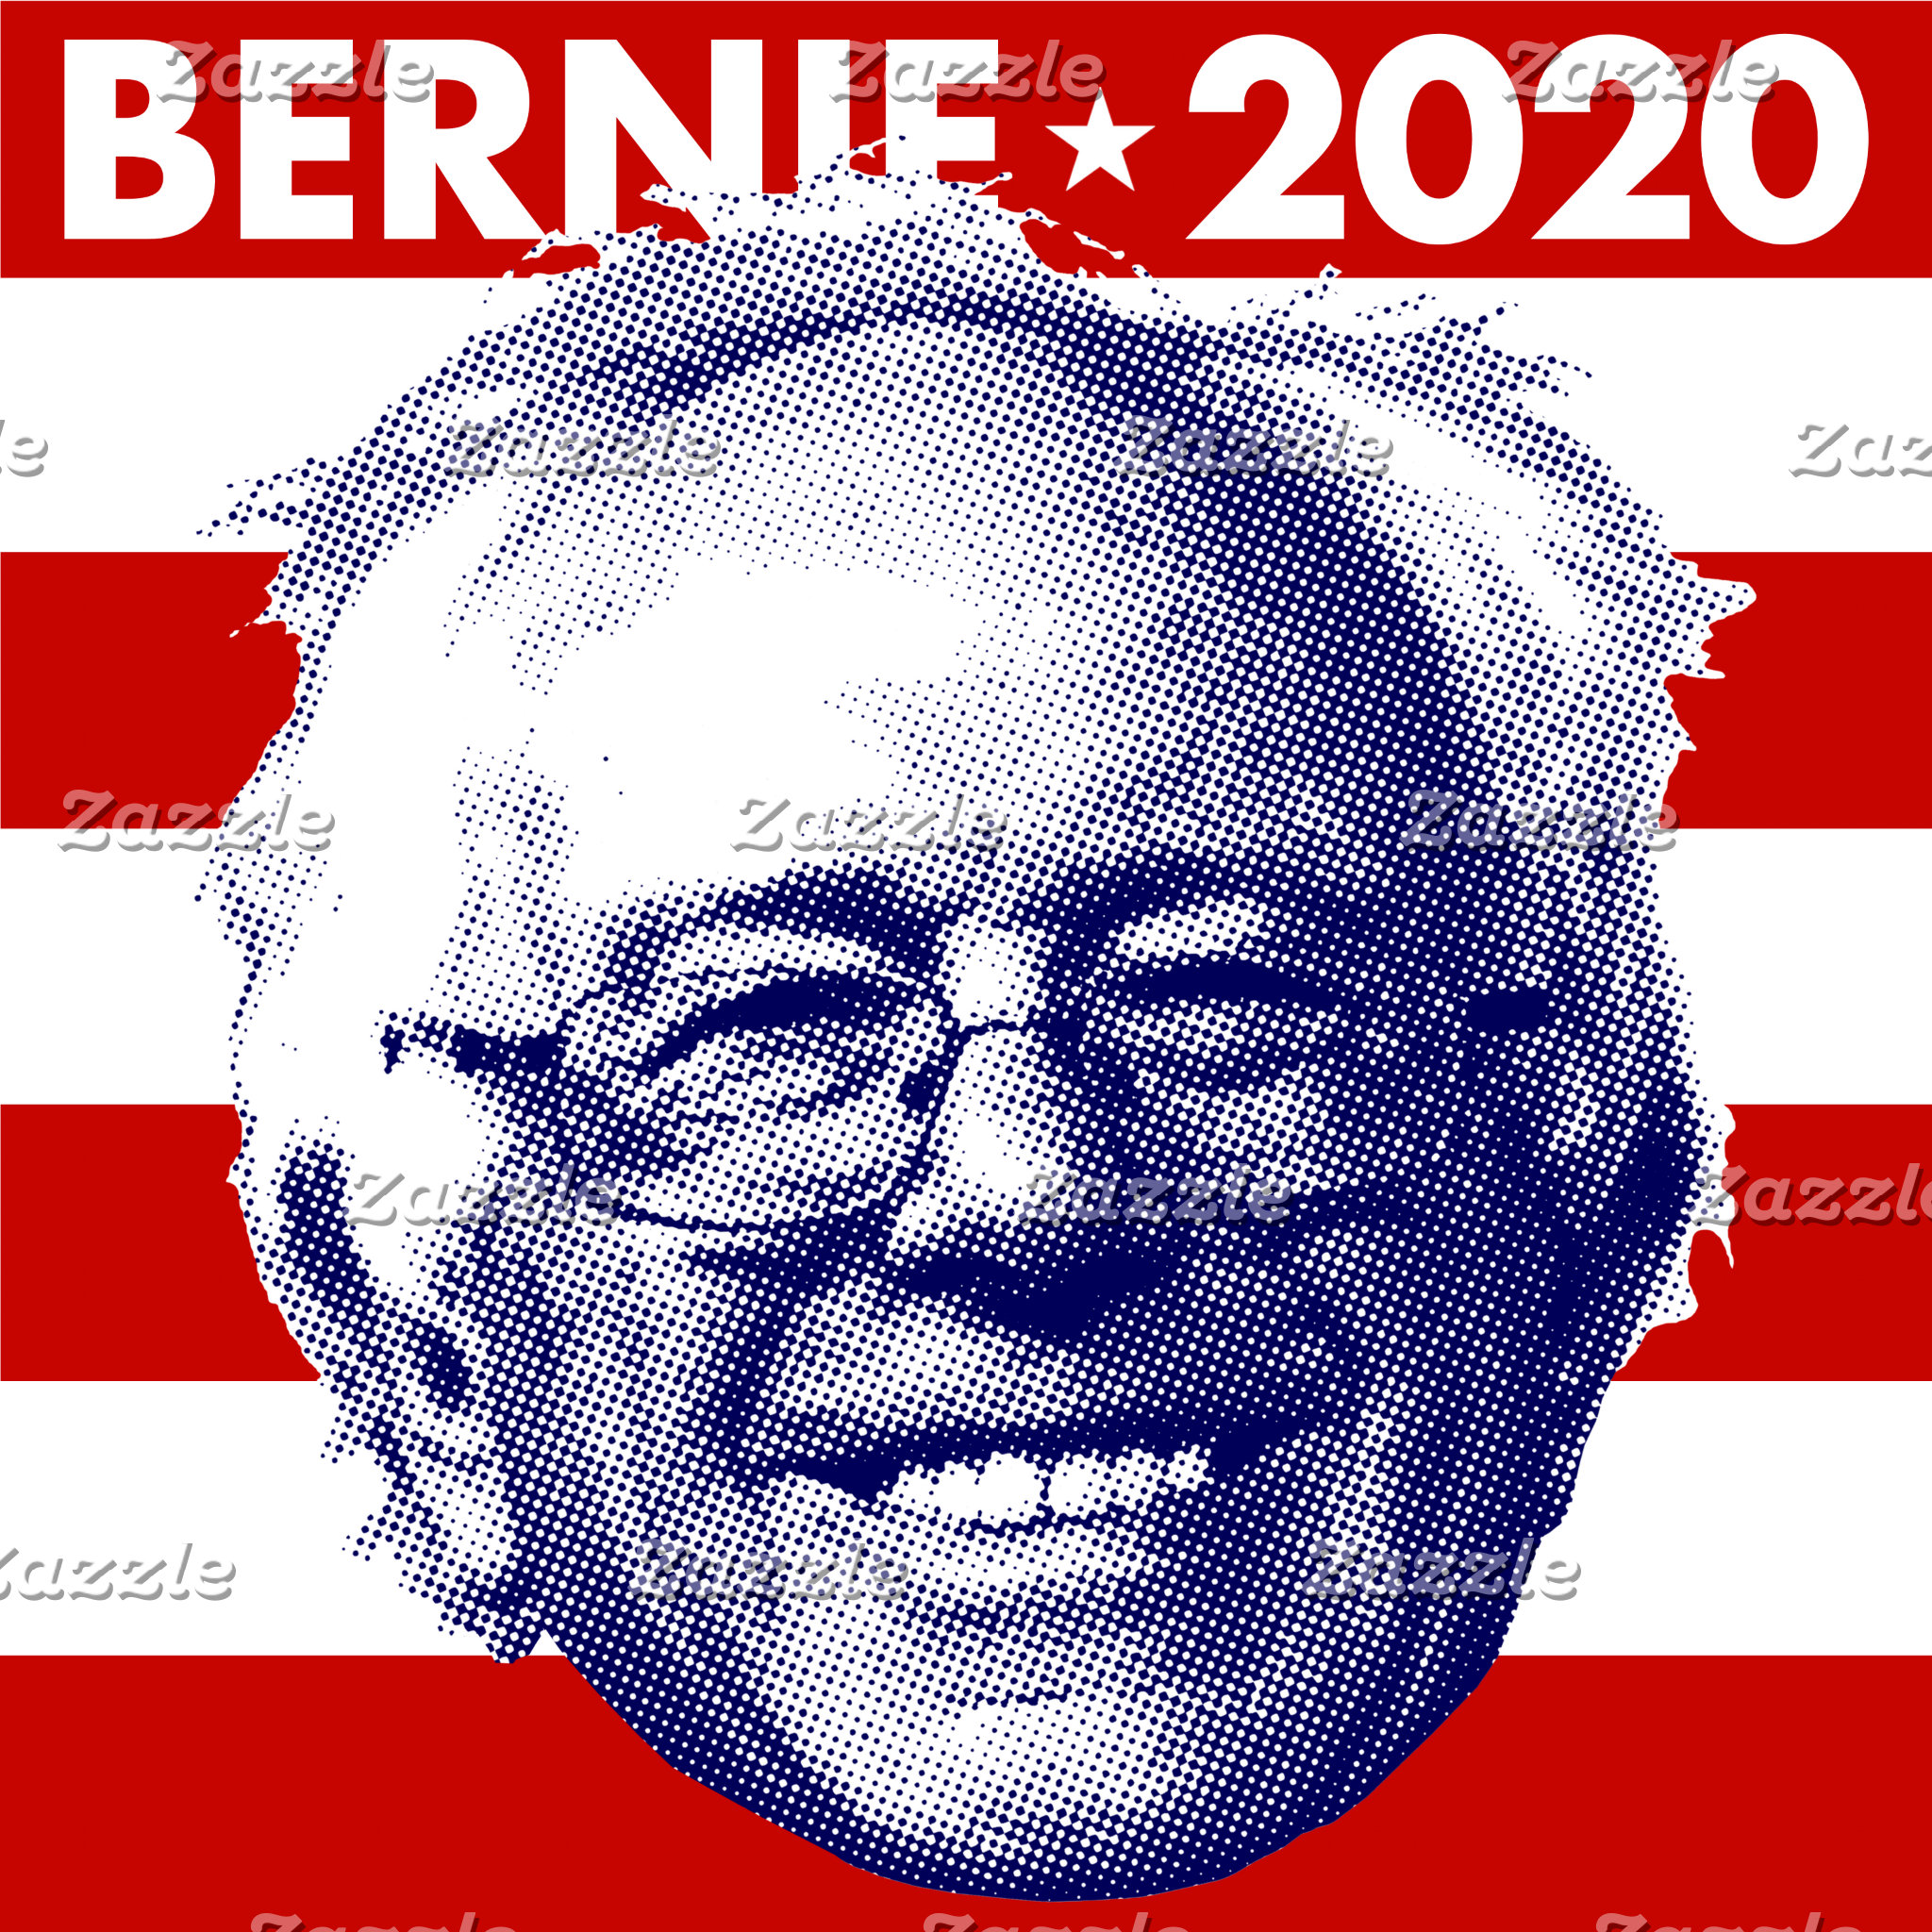 2020 Election for President